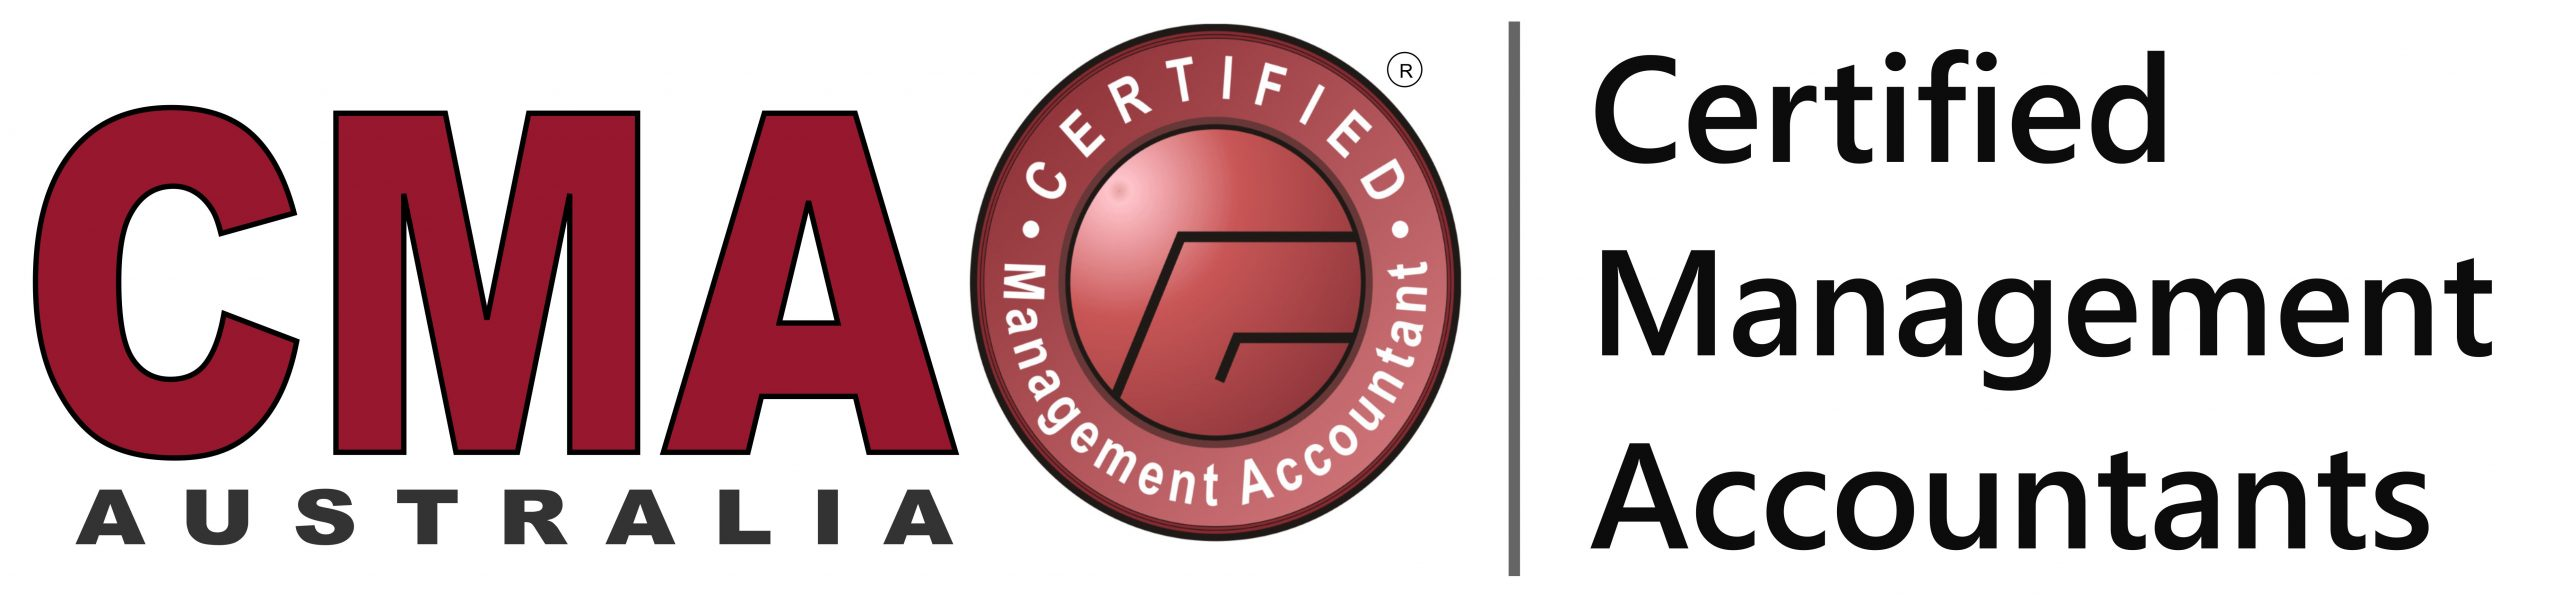 University Students Can Get Free Membership to the Institute of Certified Management Accountants, Australia